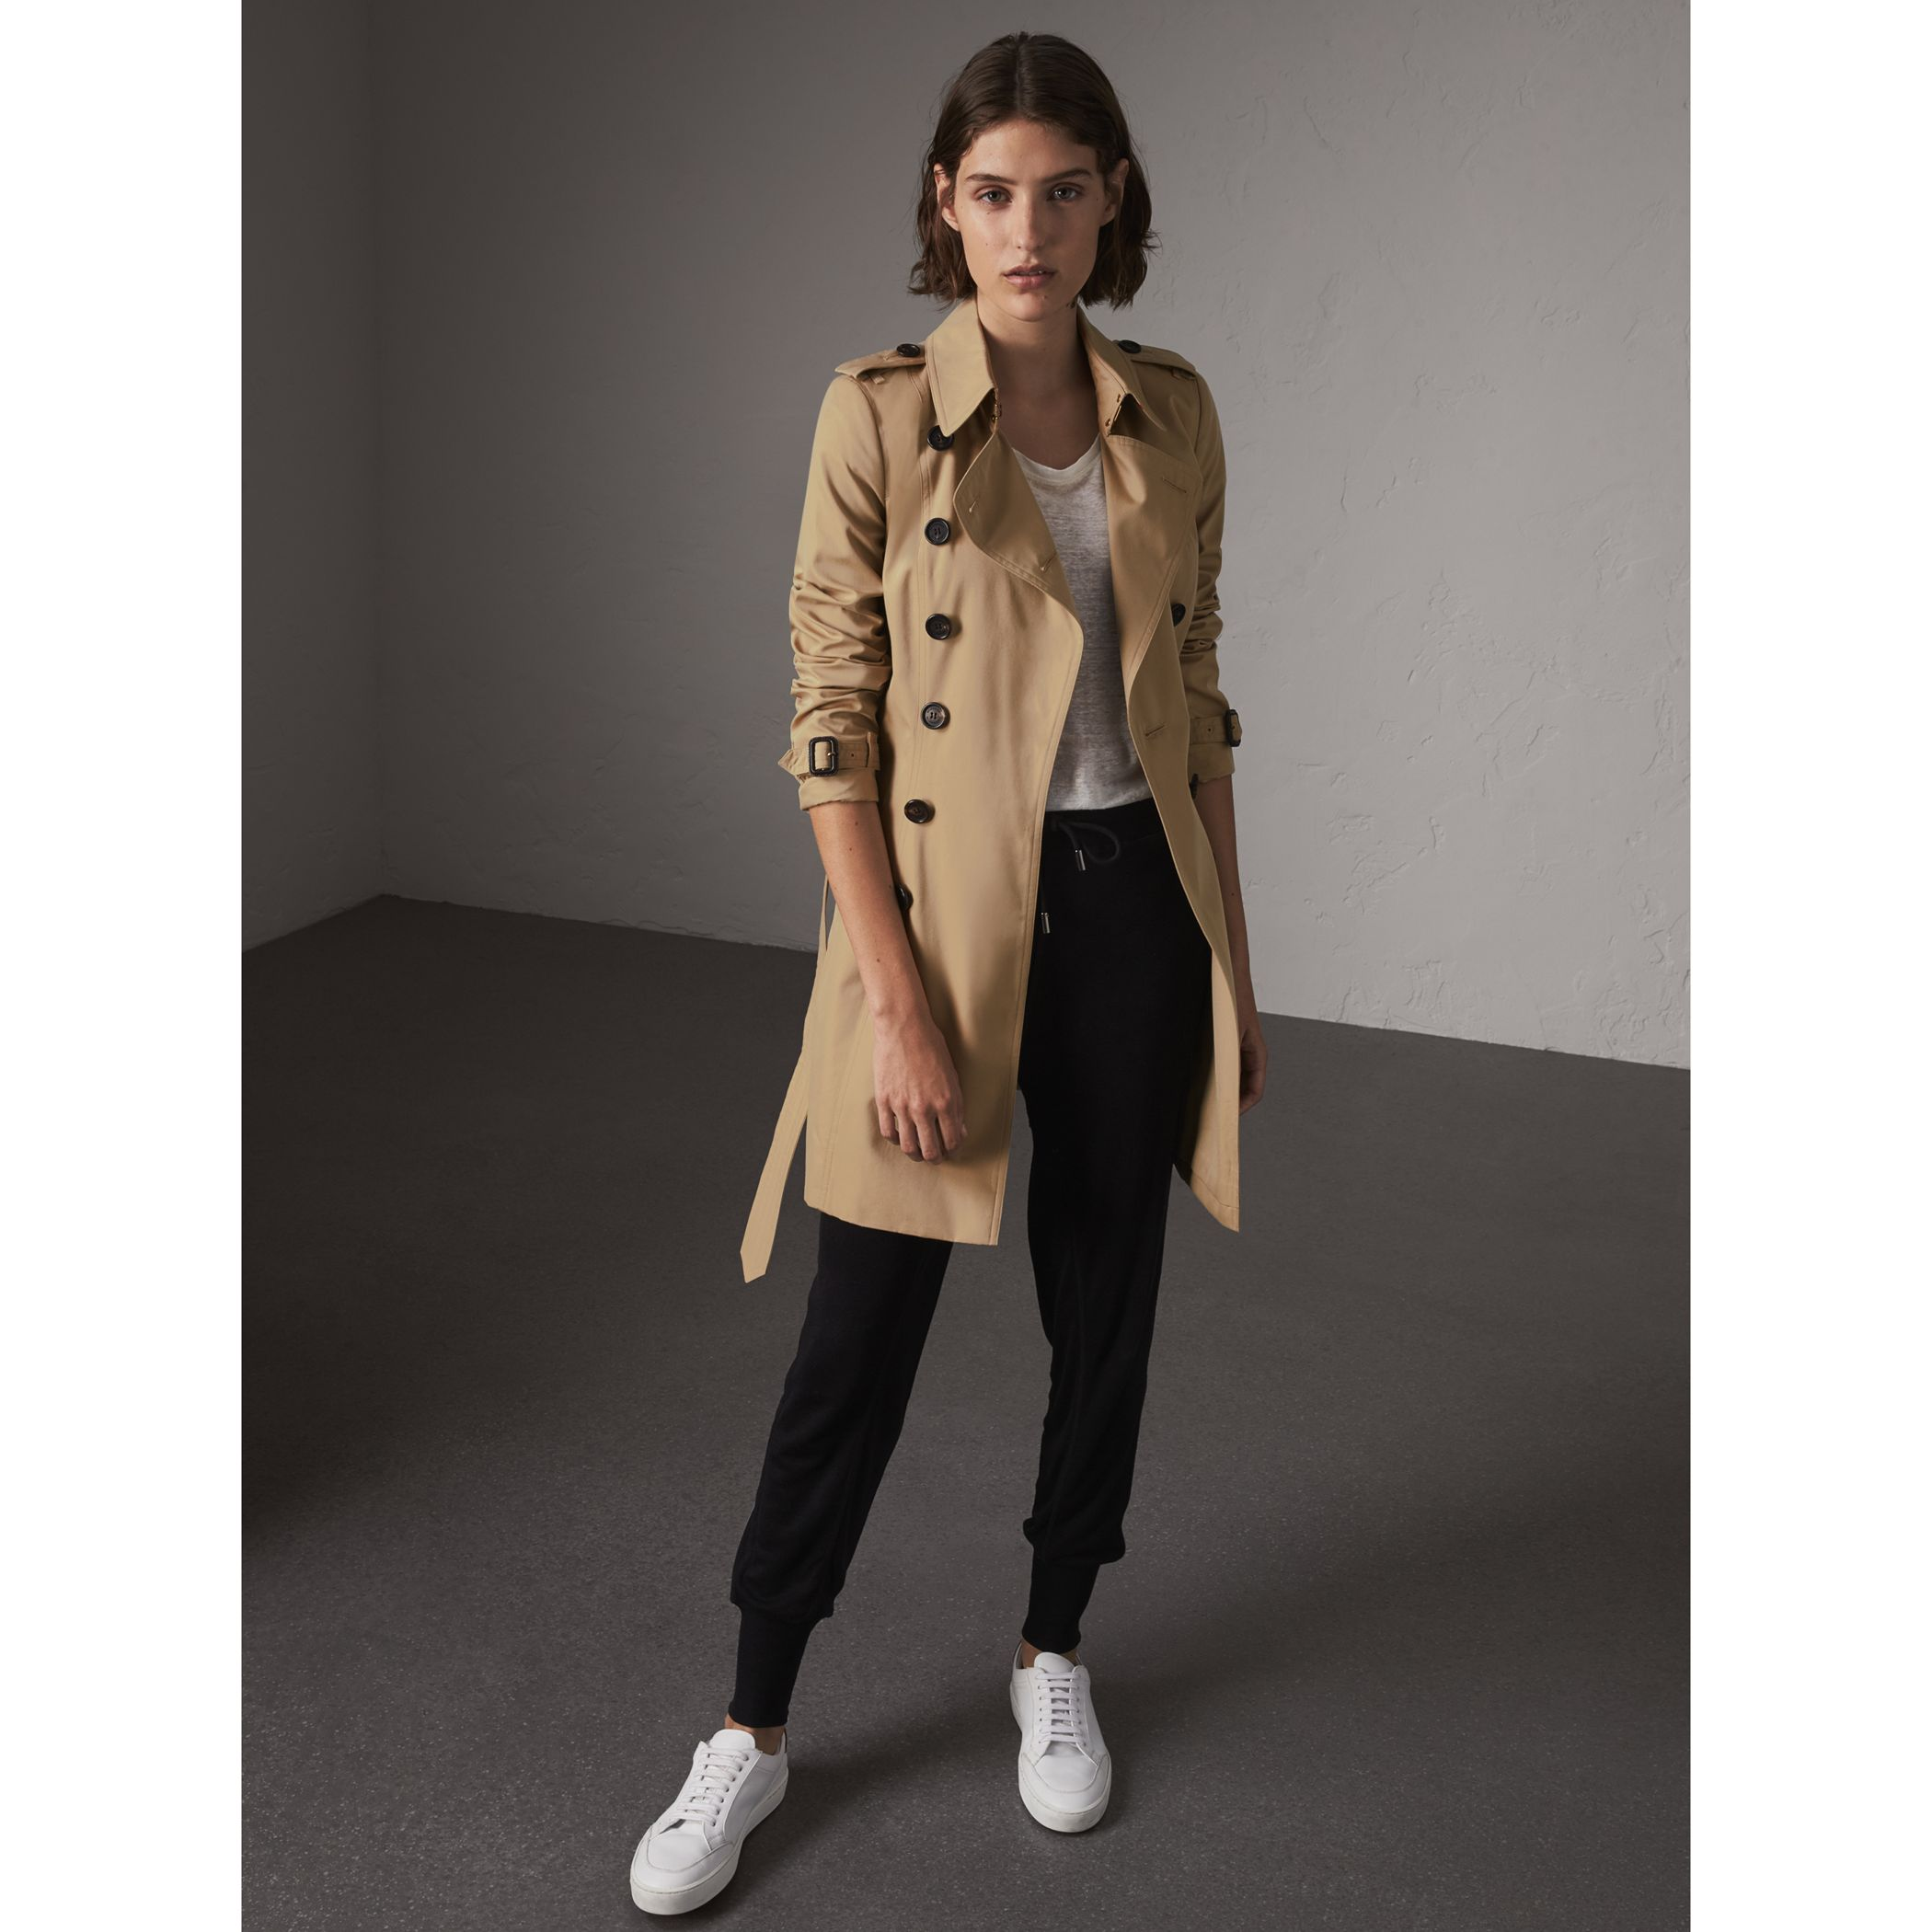 Burberry women trench coat